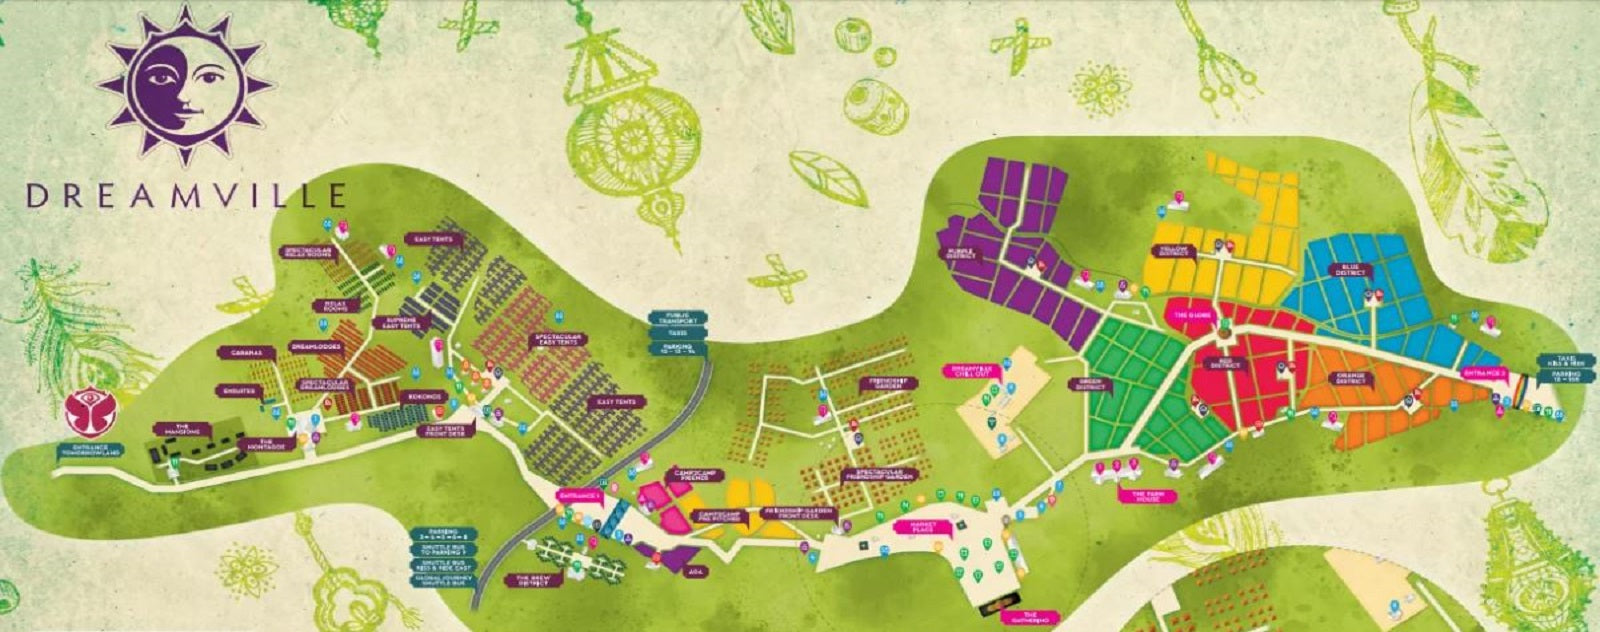 Plan tomorrowland